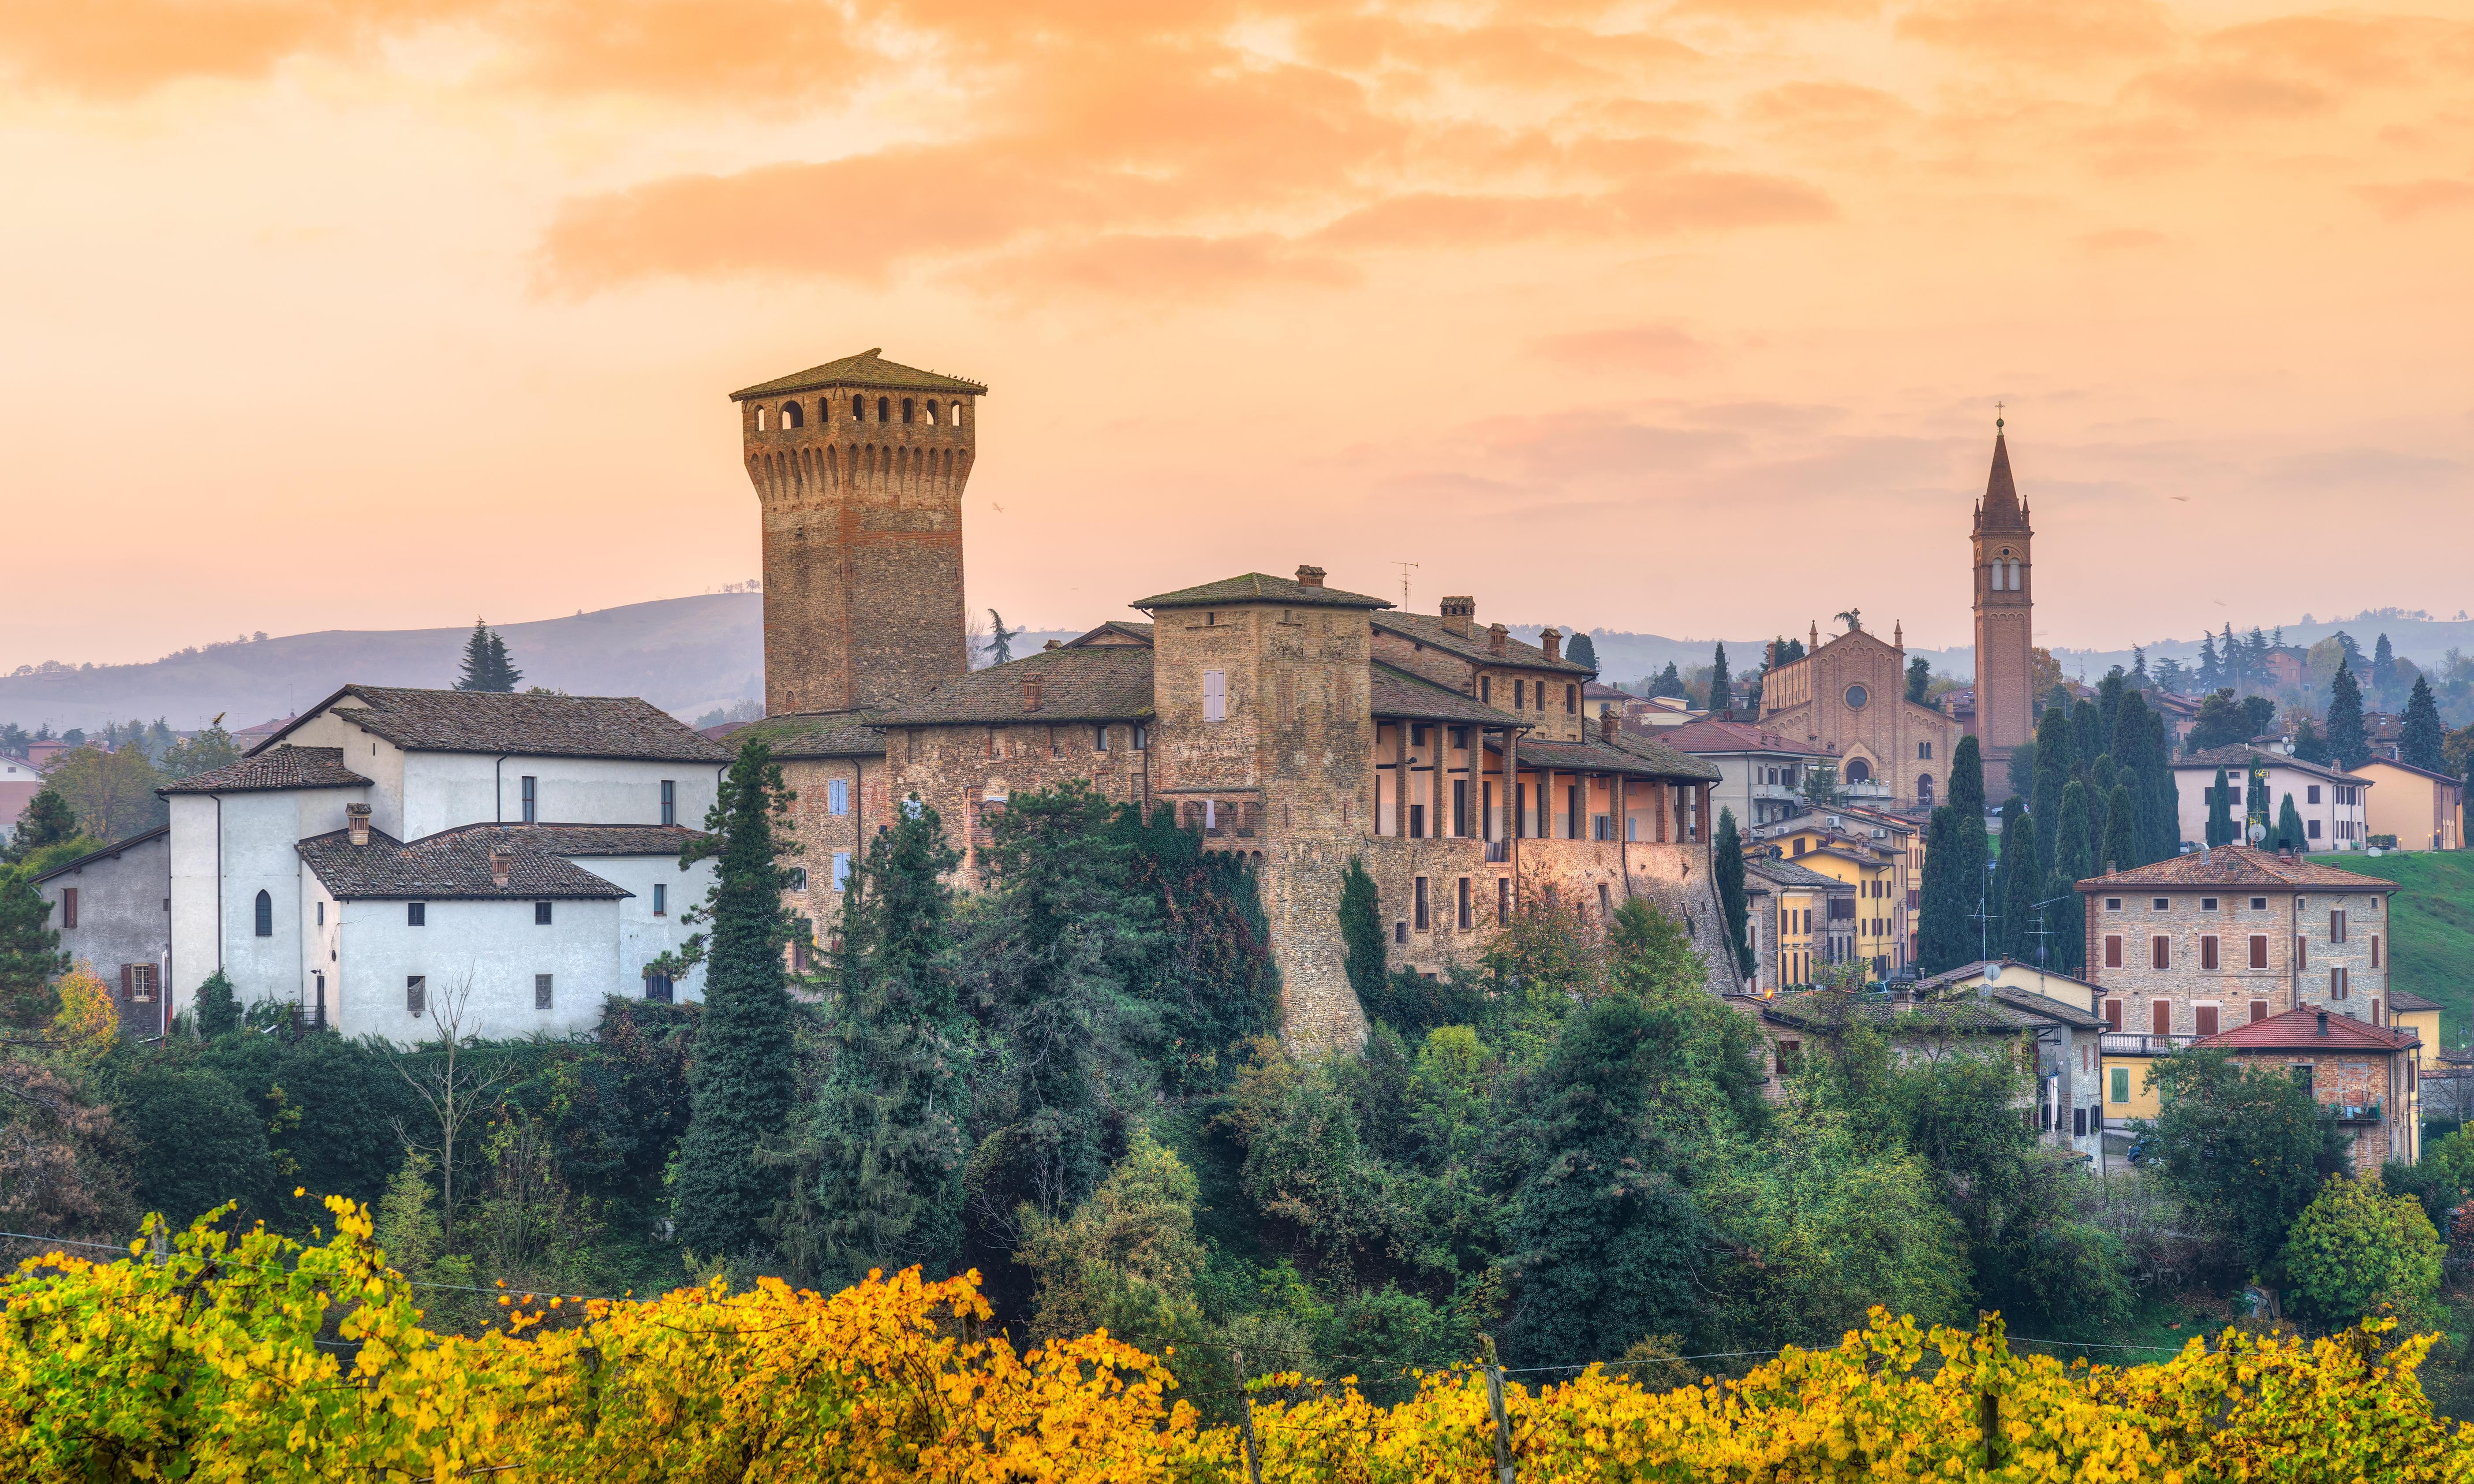 Send us a tip about Emilia-Romagna for a chance to win a £200 hotel voucher